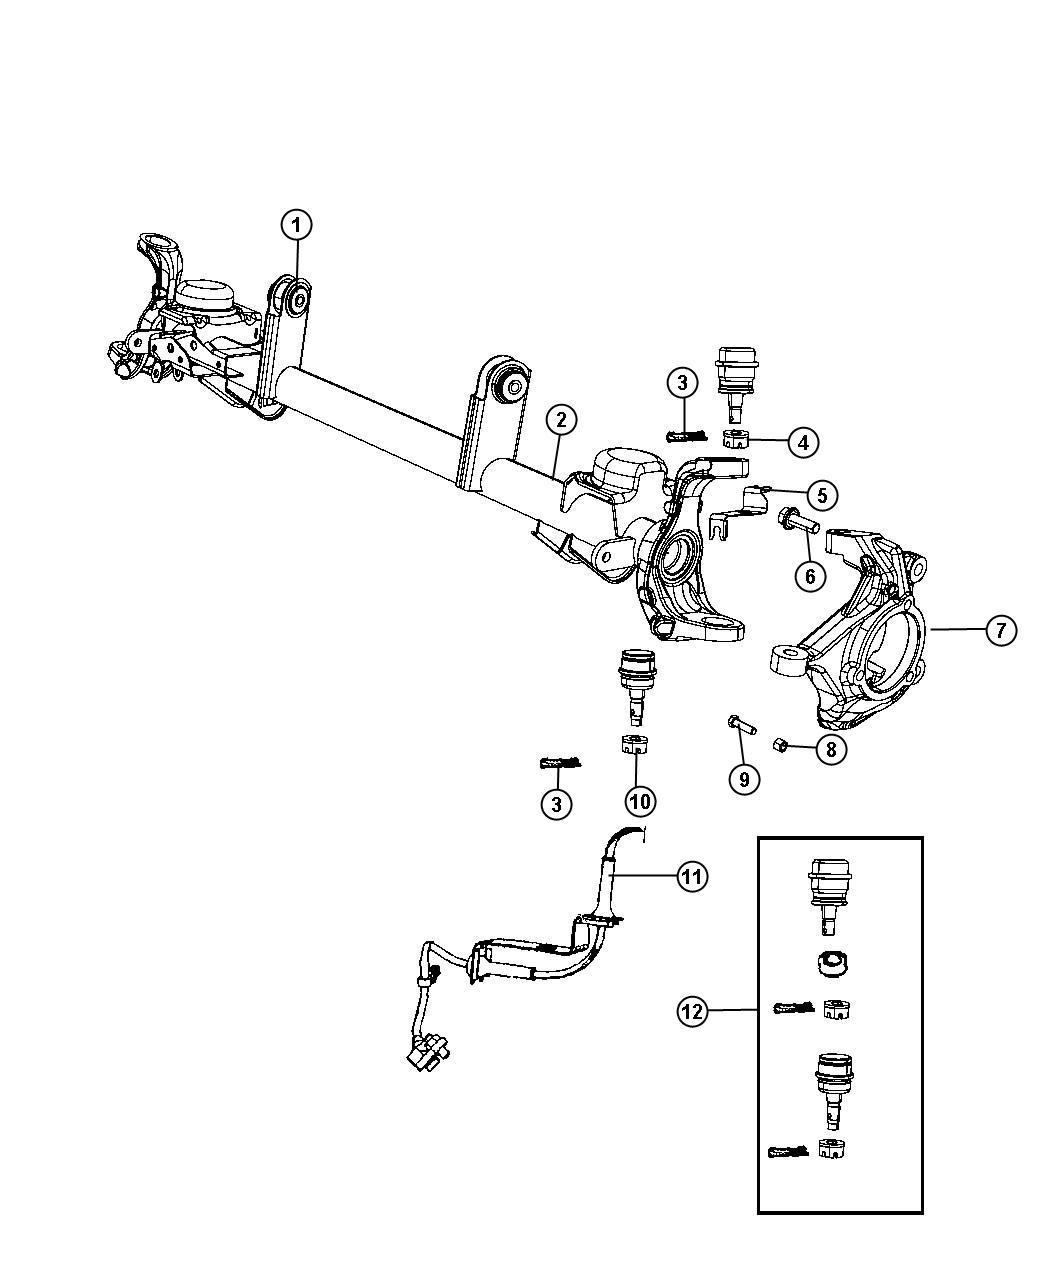 Jeep Wrangler Housing Axle With 2 Upper Control Arm